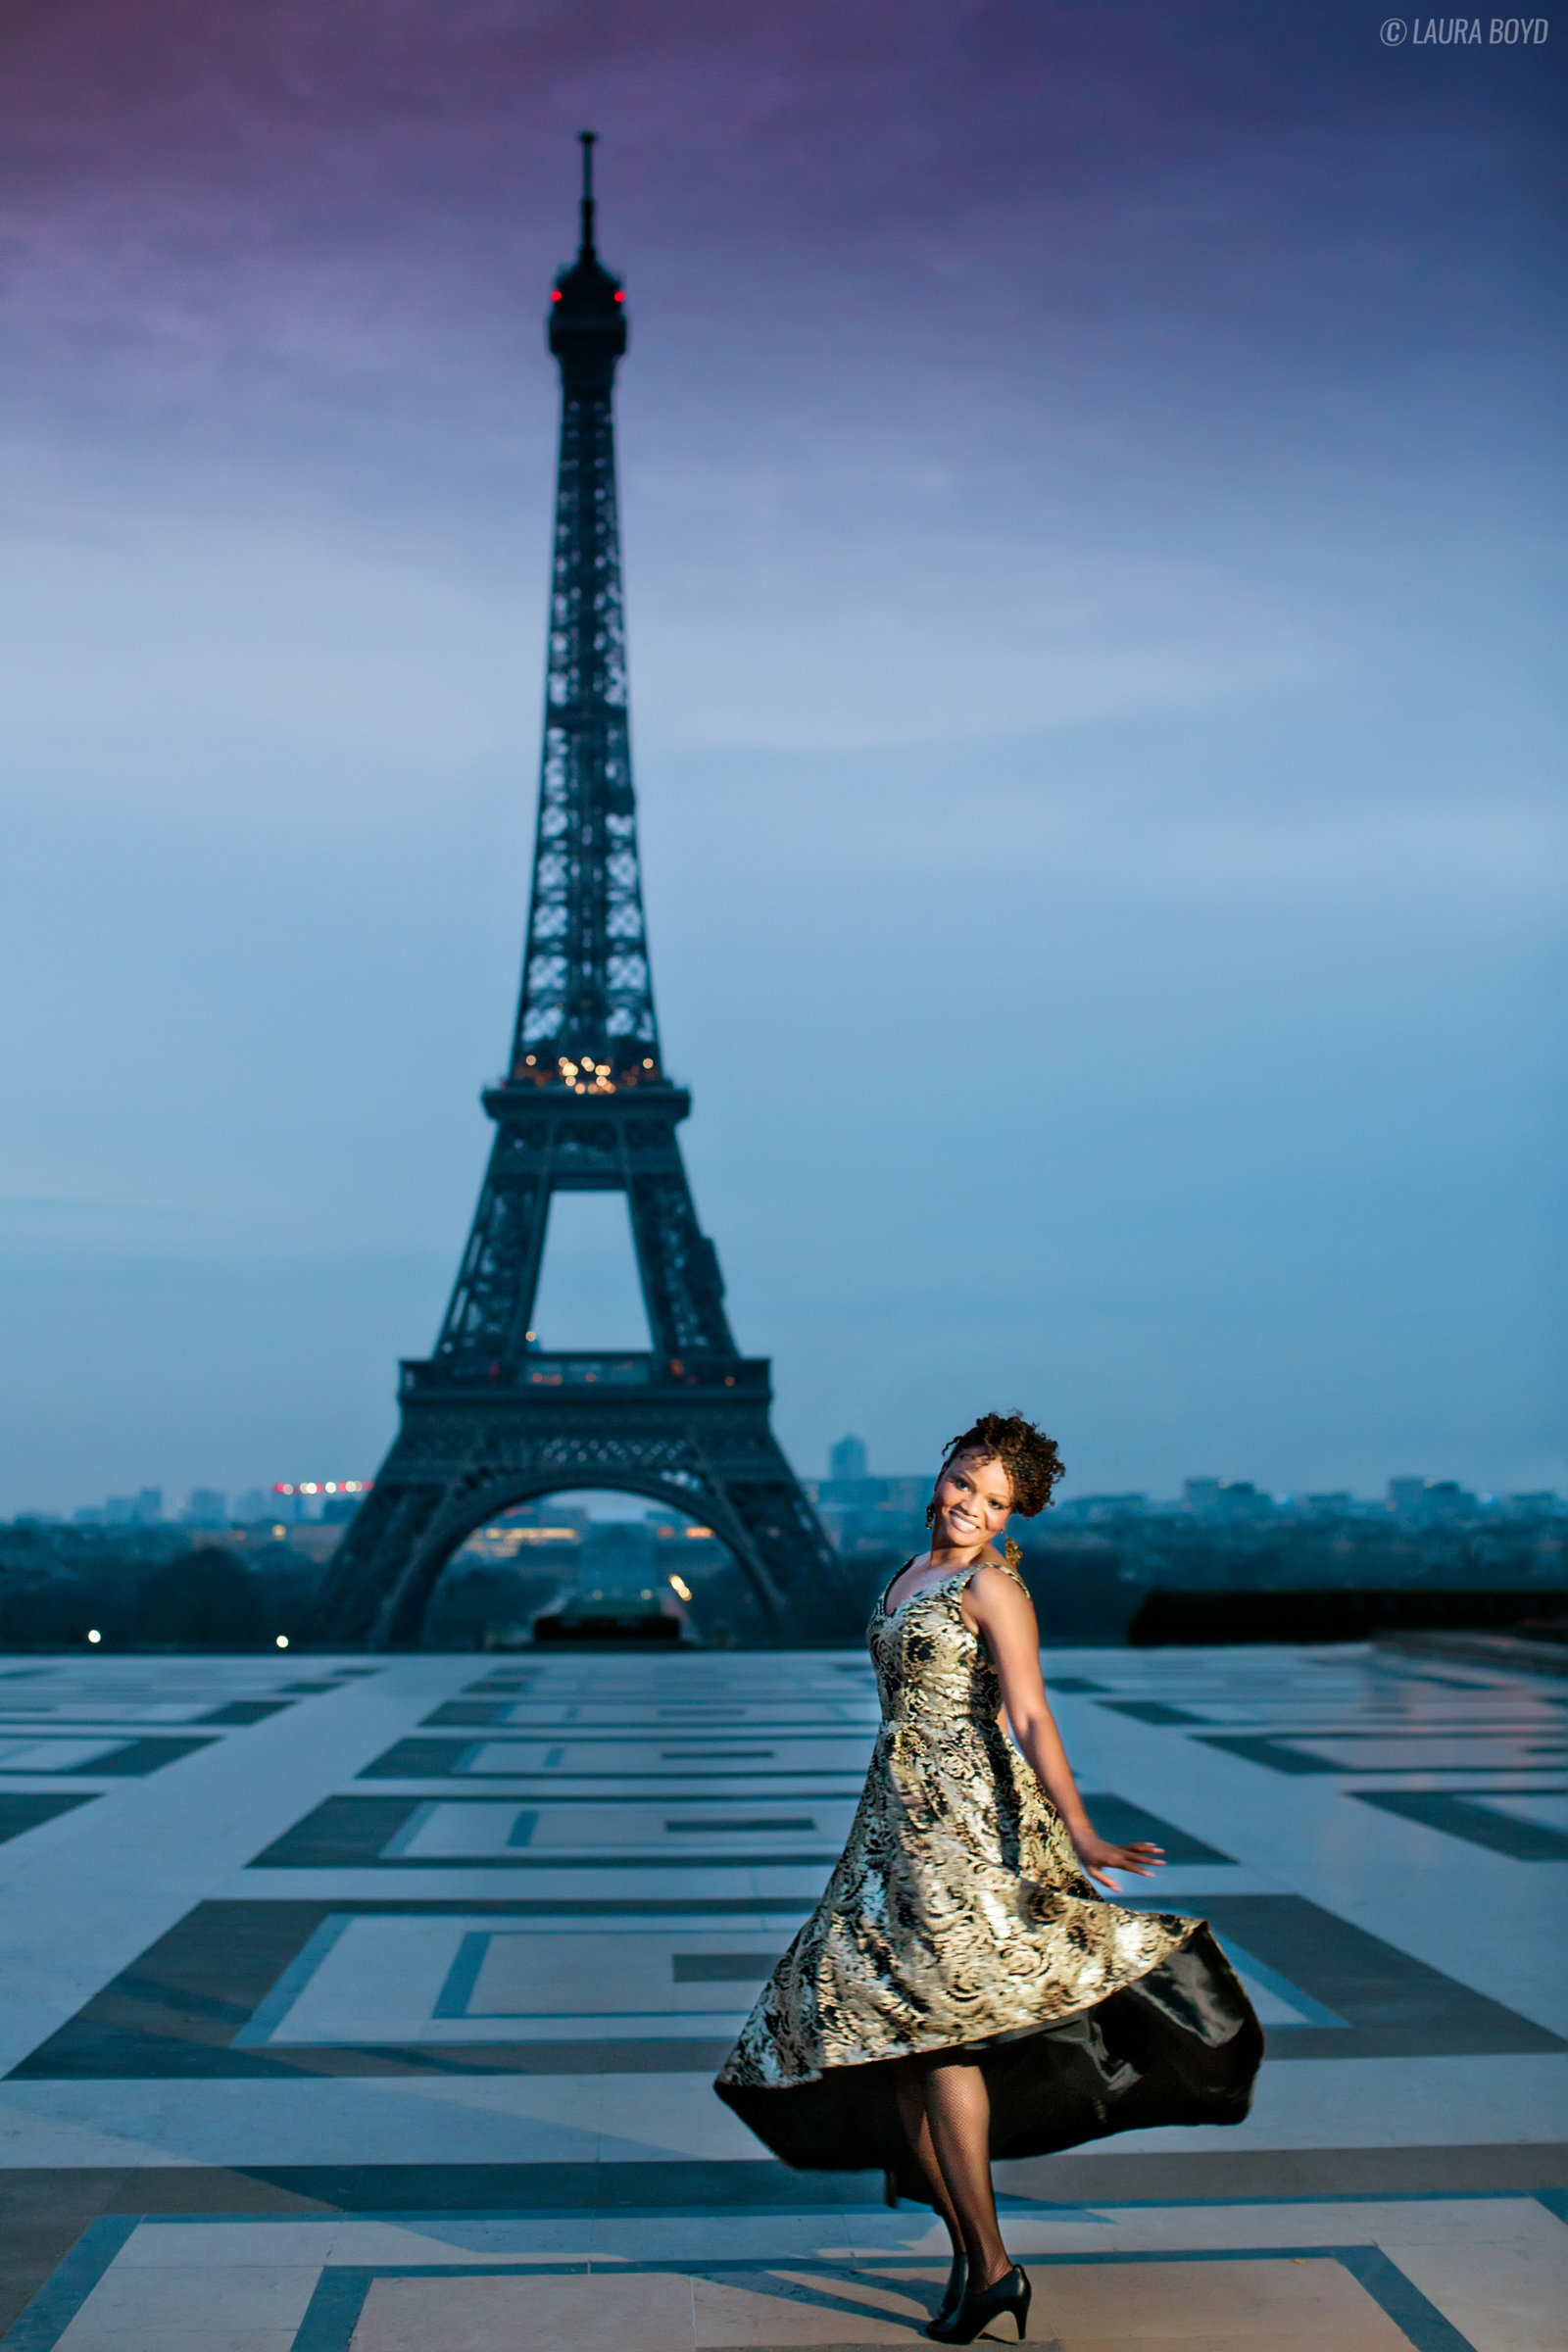 showit.laura.boyd.portraits.paris.2-3